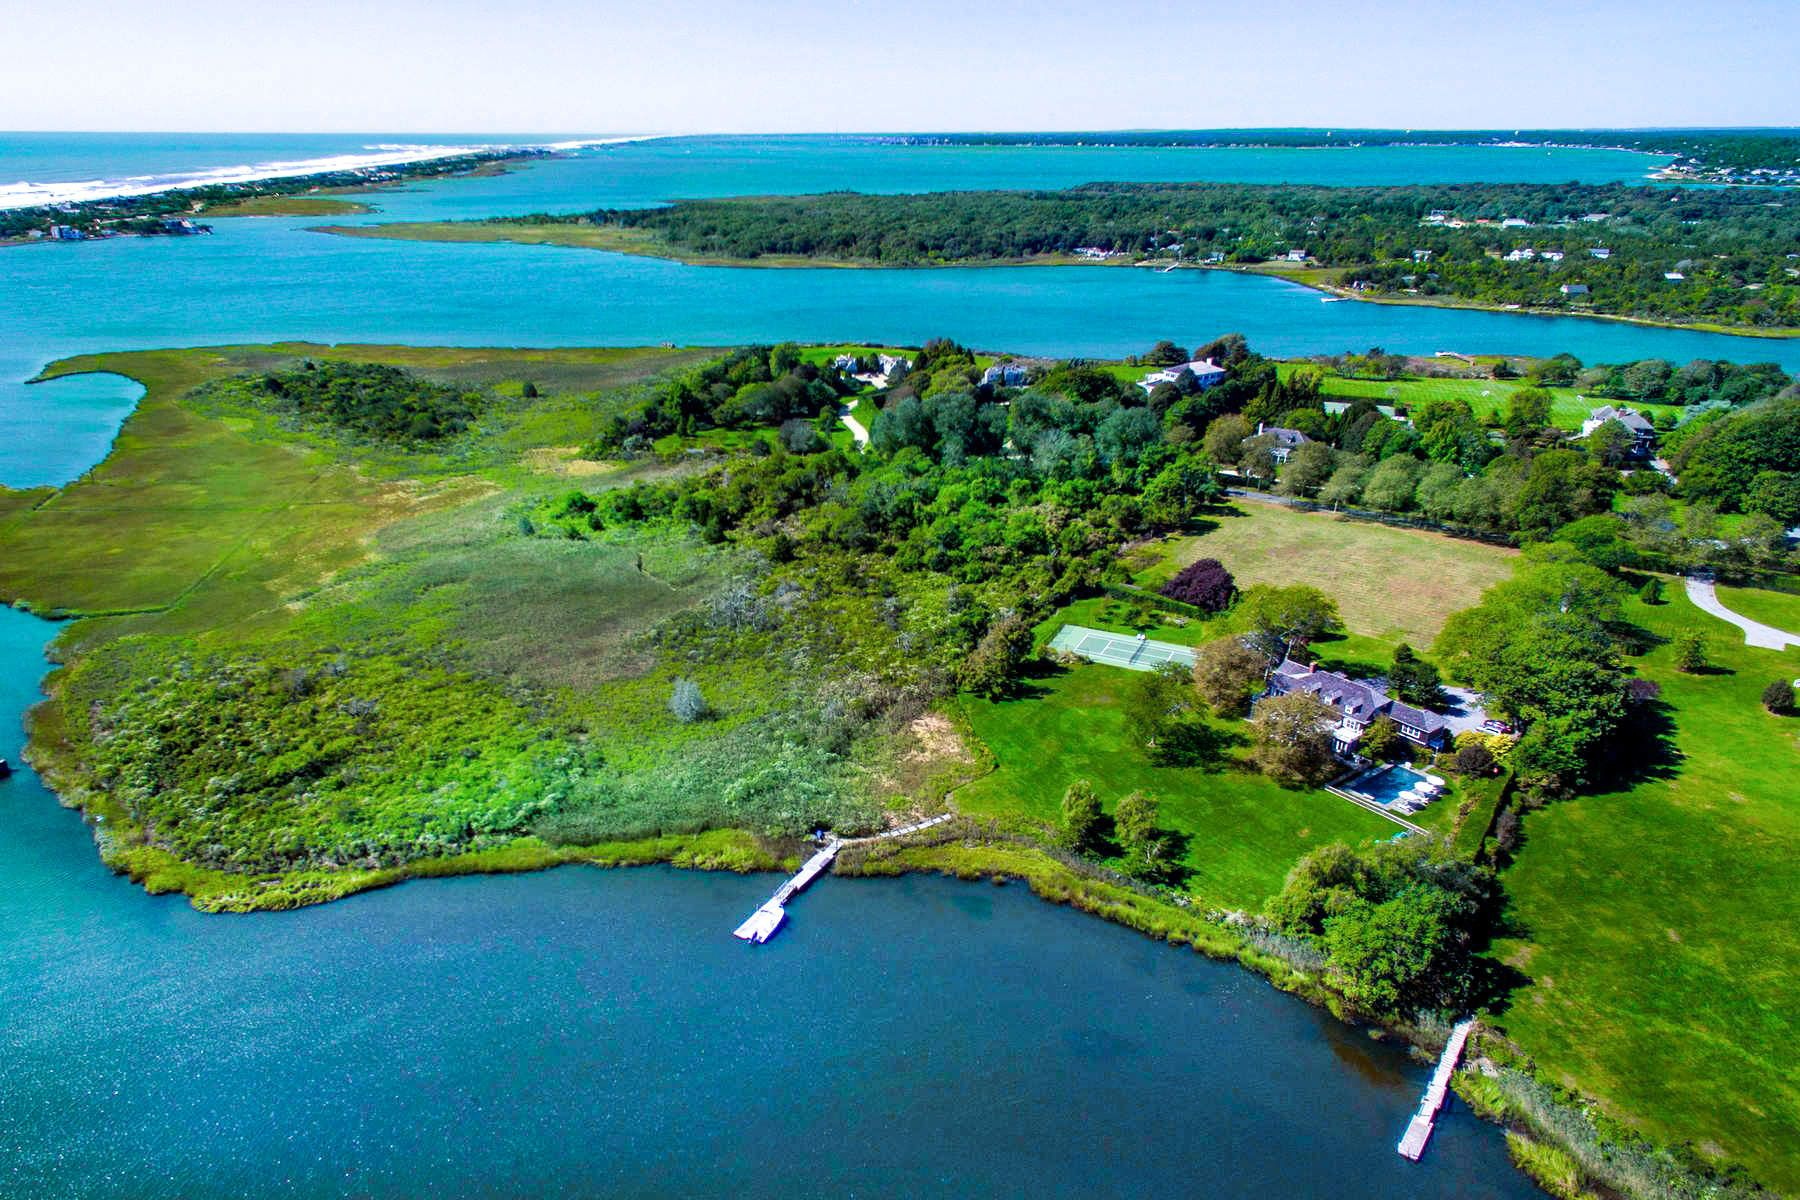 Single Family Home for Sale at Captains Neck Waterfront Estate W/ Dock 550 Captains Neck Lane Southampton, New York 11968 United States